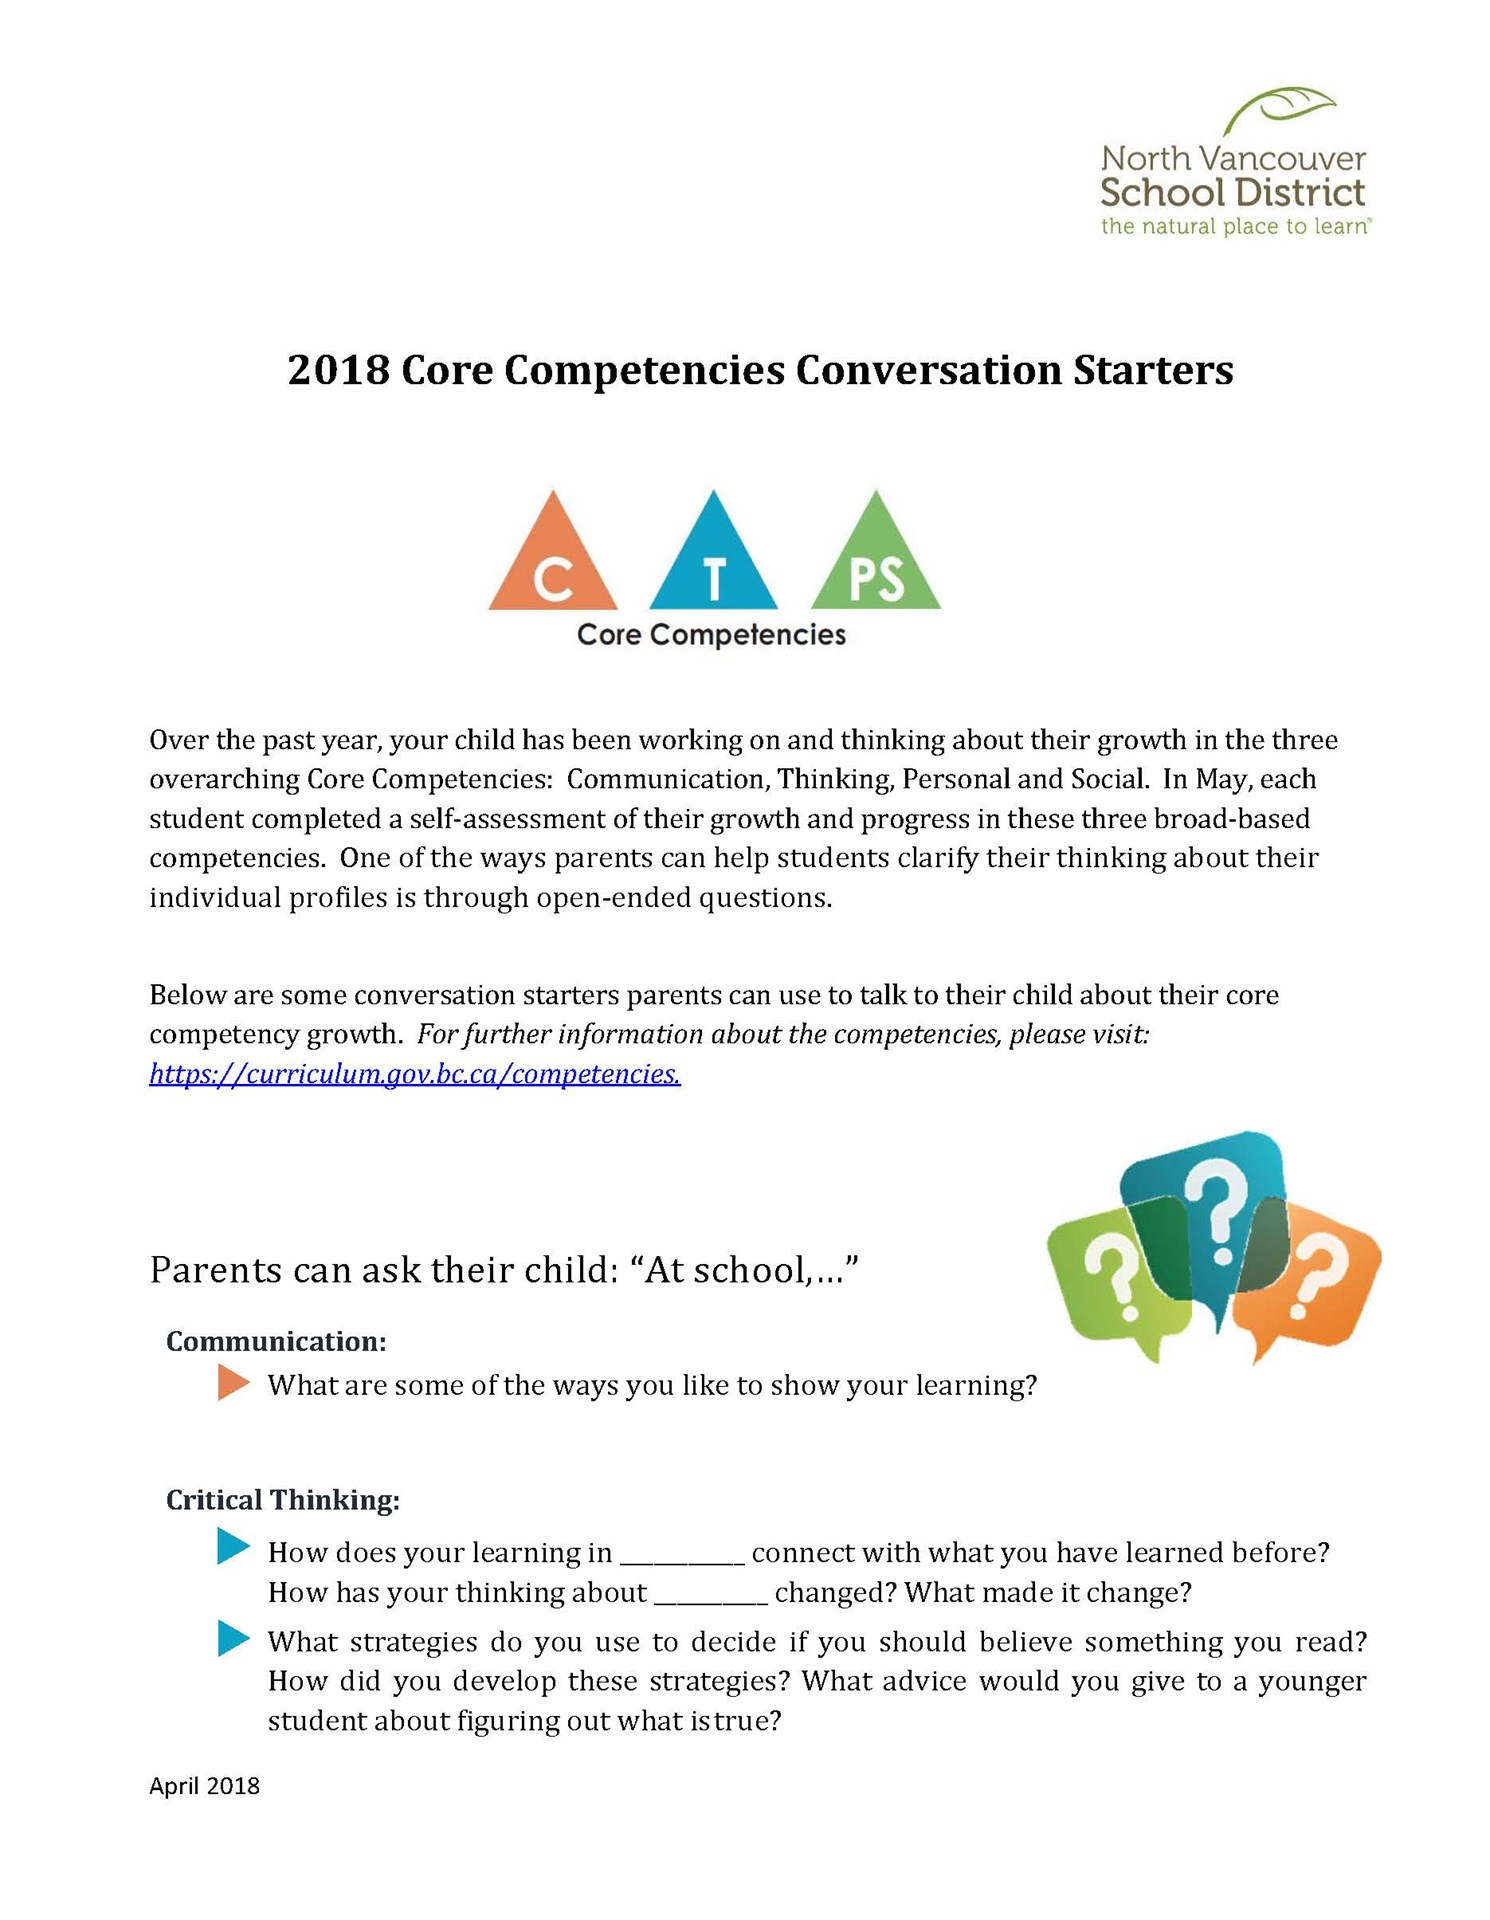 2018 Core Competency Self Assessment Conversation Starters_Page_1.jpg